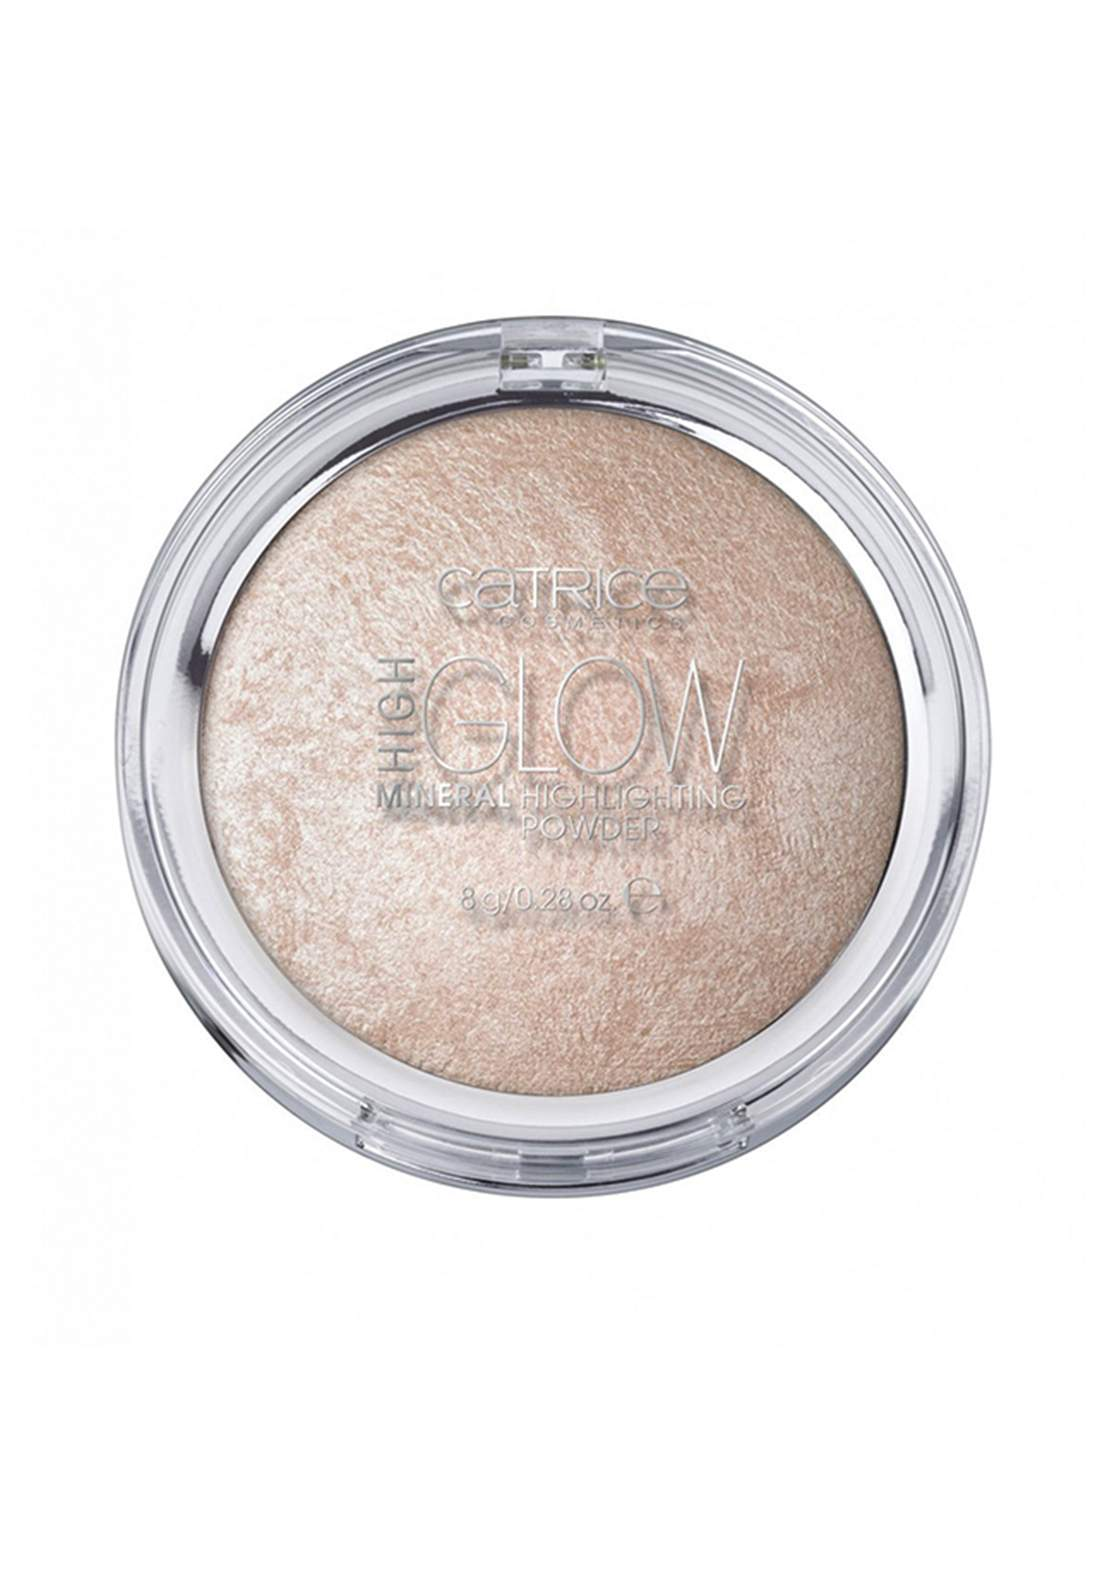 Catrice High Glow Mineral Highlighting Powder 010 Light Infusion 8g أضاءة